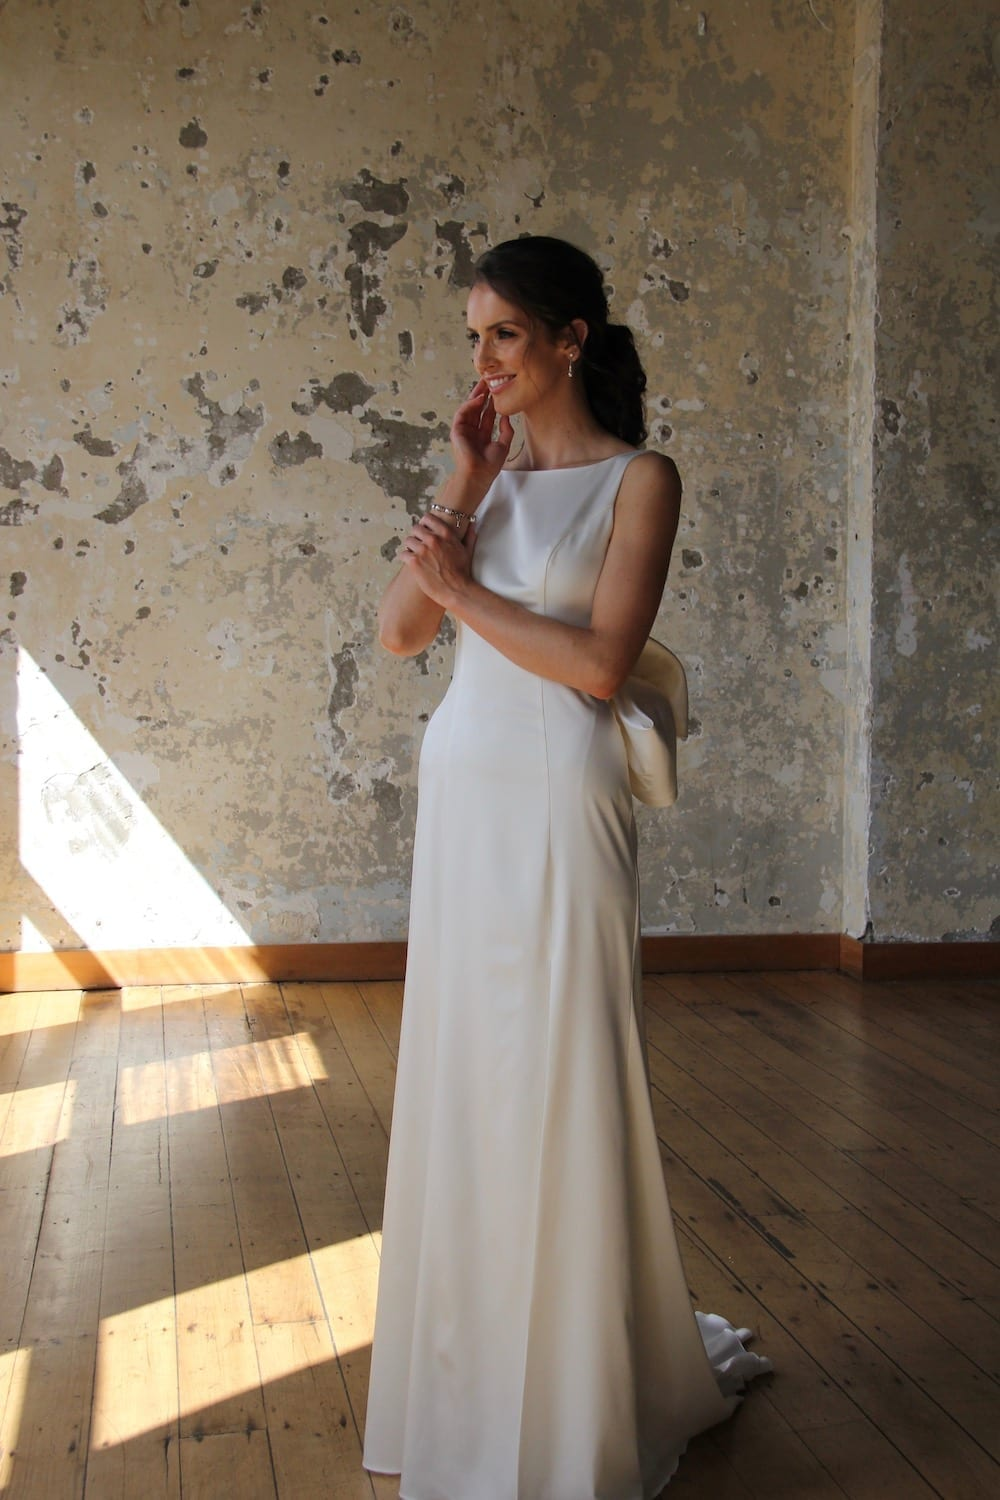 Female model wearing Vinka Design Modern Muse Wedding Dress. In chic warehouse the front detail of a gown with a bateau neckline and low scooped back gently flaring to a simple train with a detachable bow.